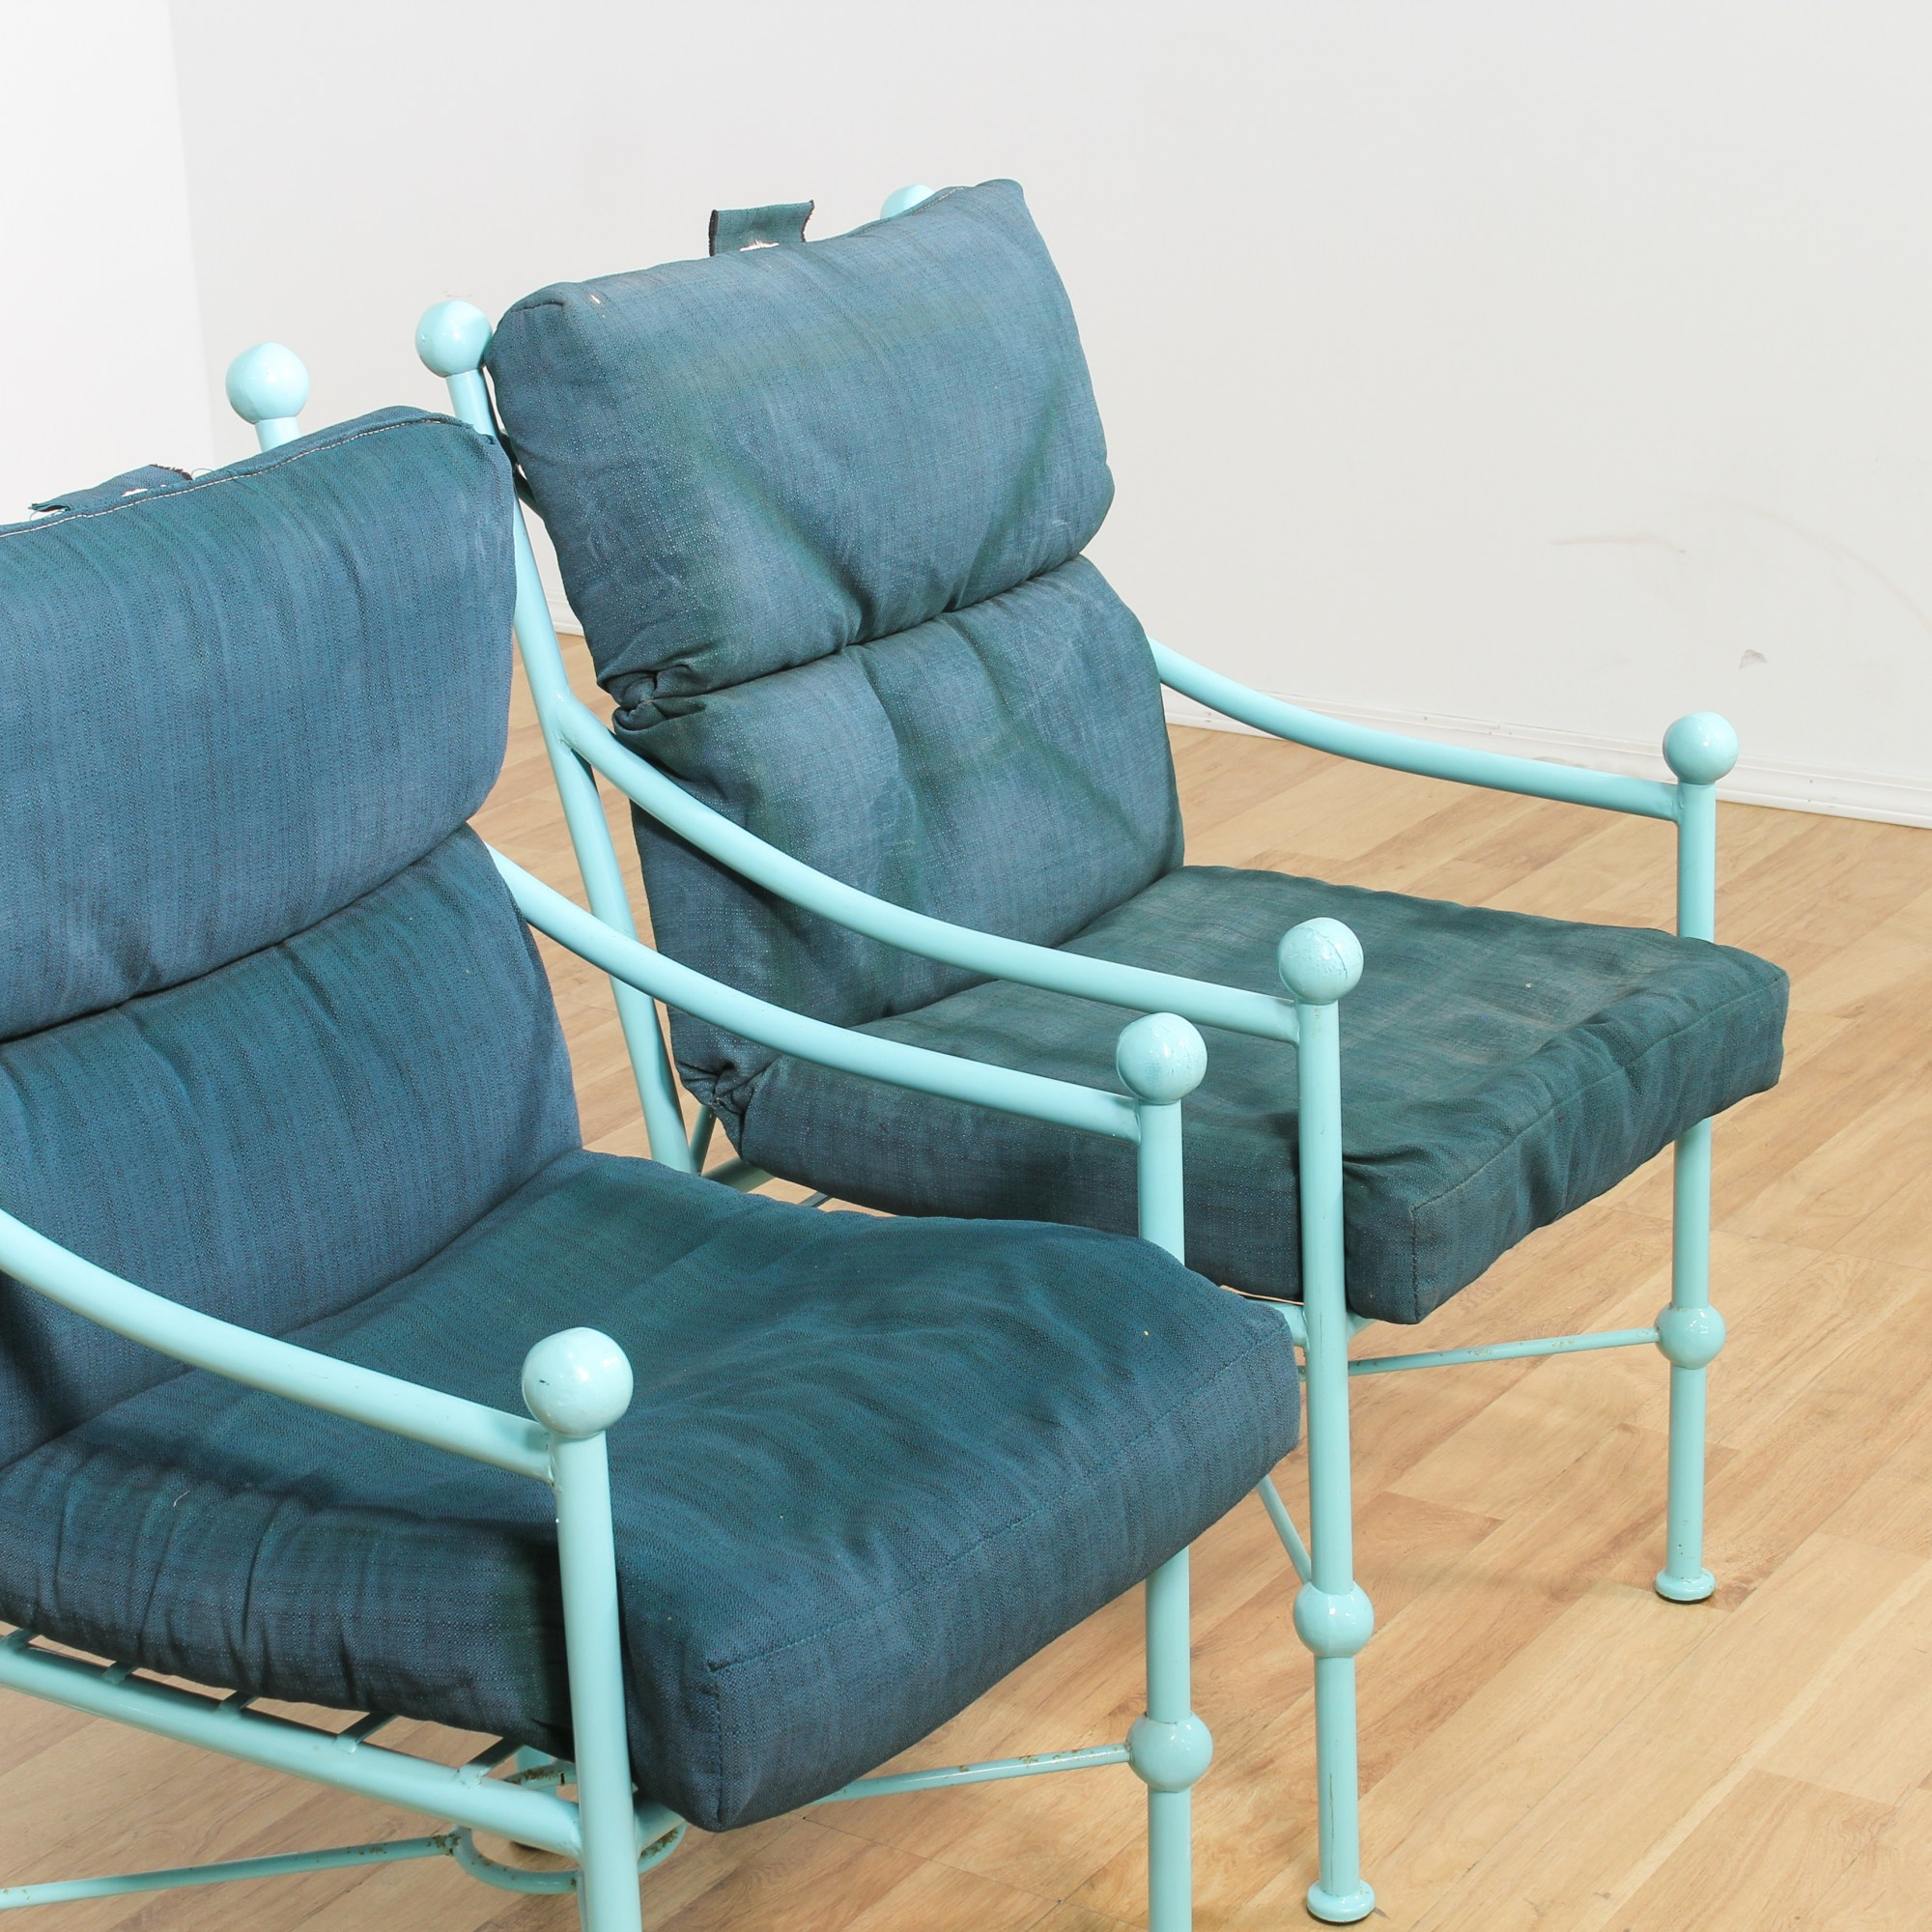 4 Turquoise Painted Upholstered Patio Chairs Loveseat